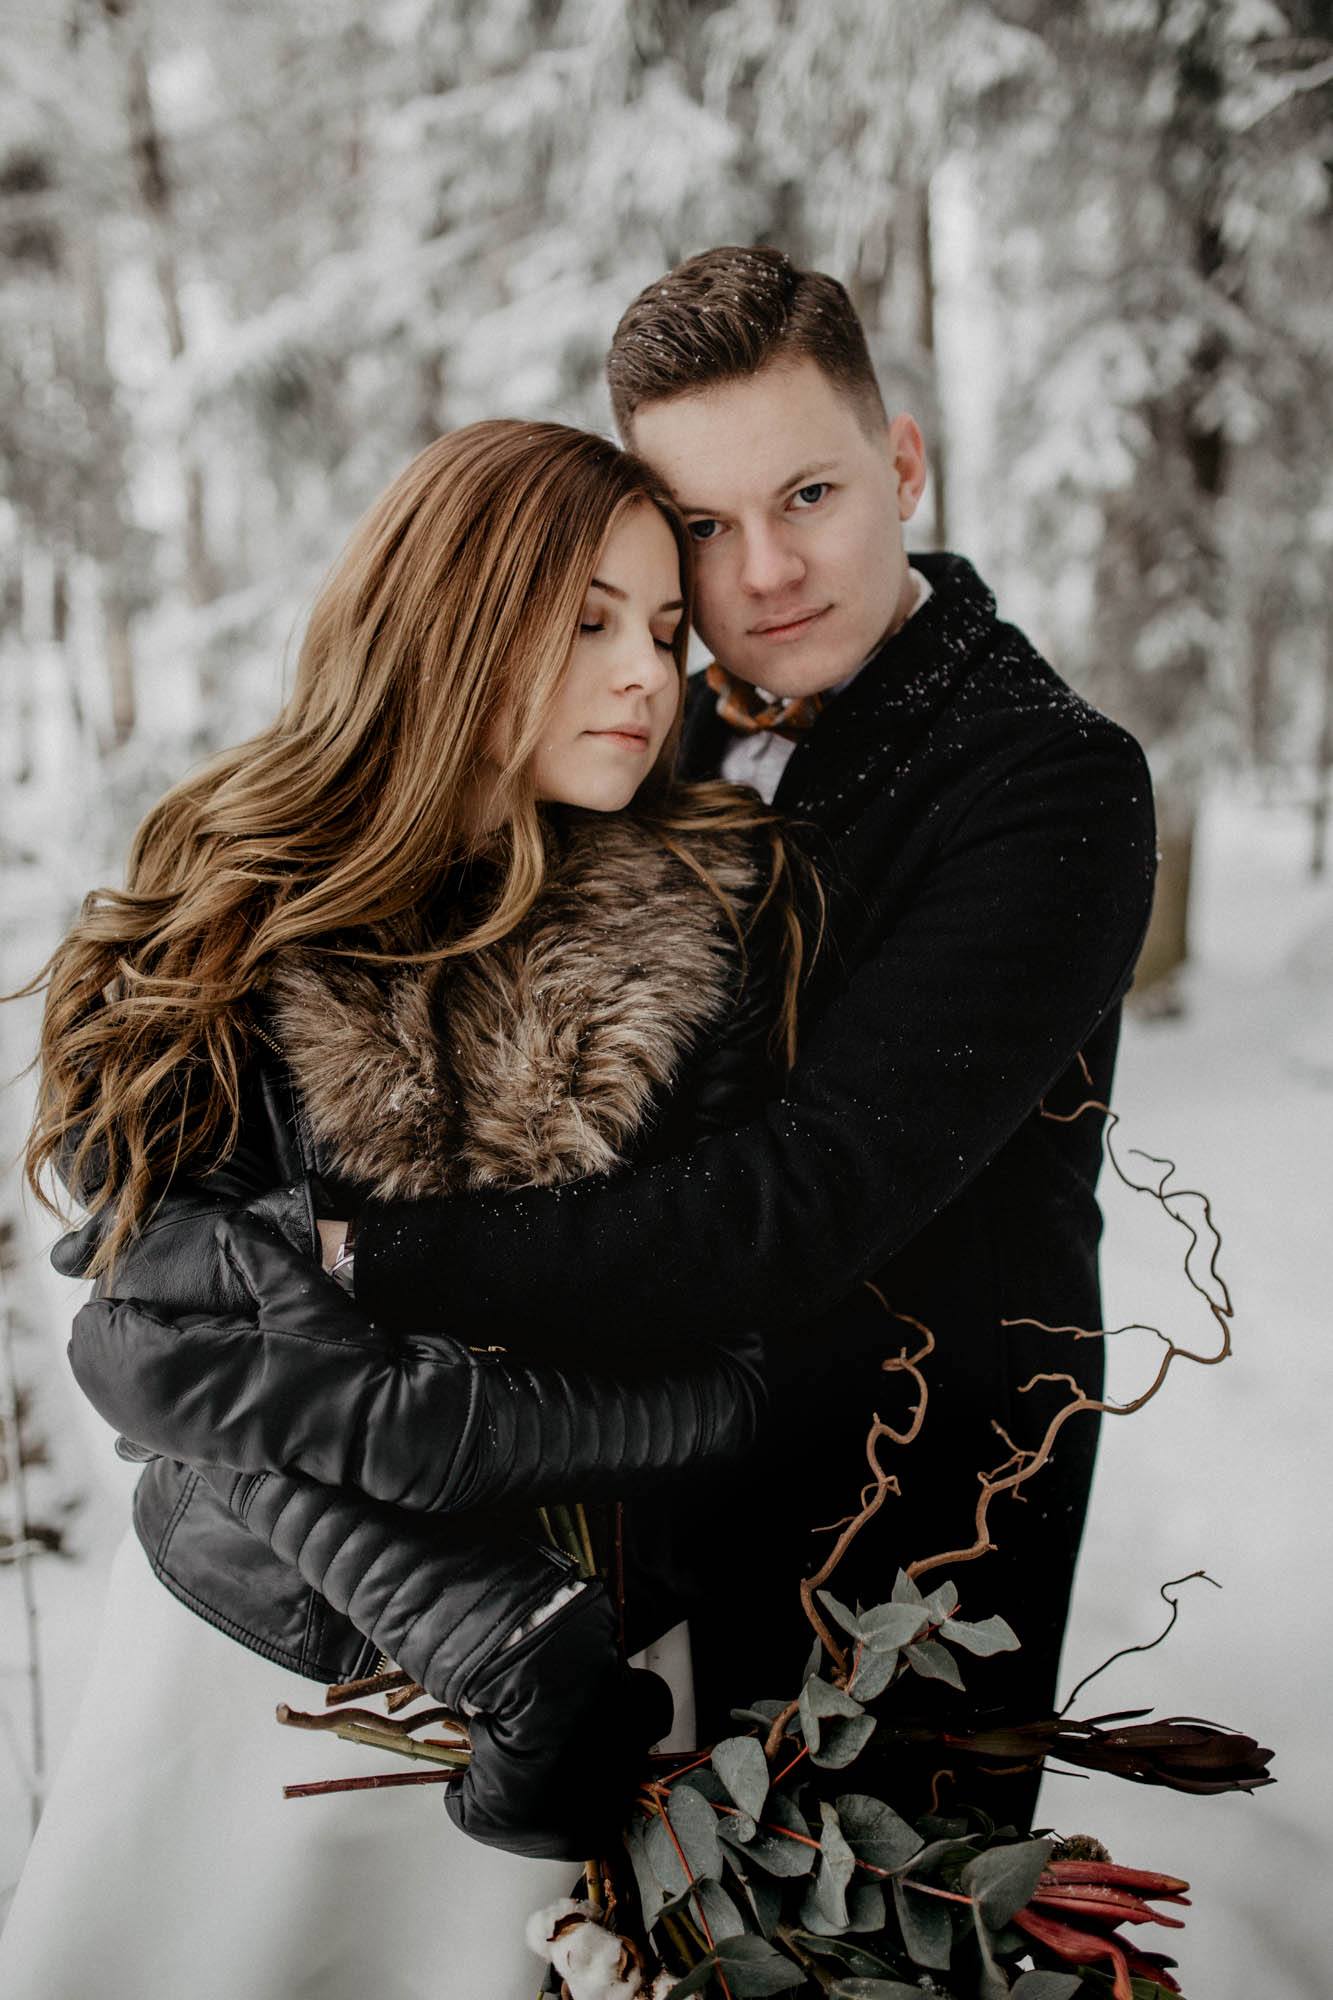 ashley_schulman_photography-winter_wedding_tampere-21.jpg